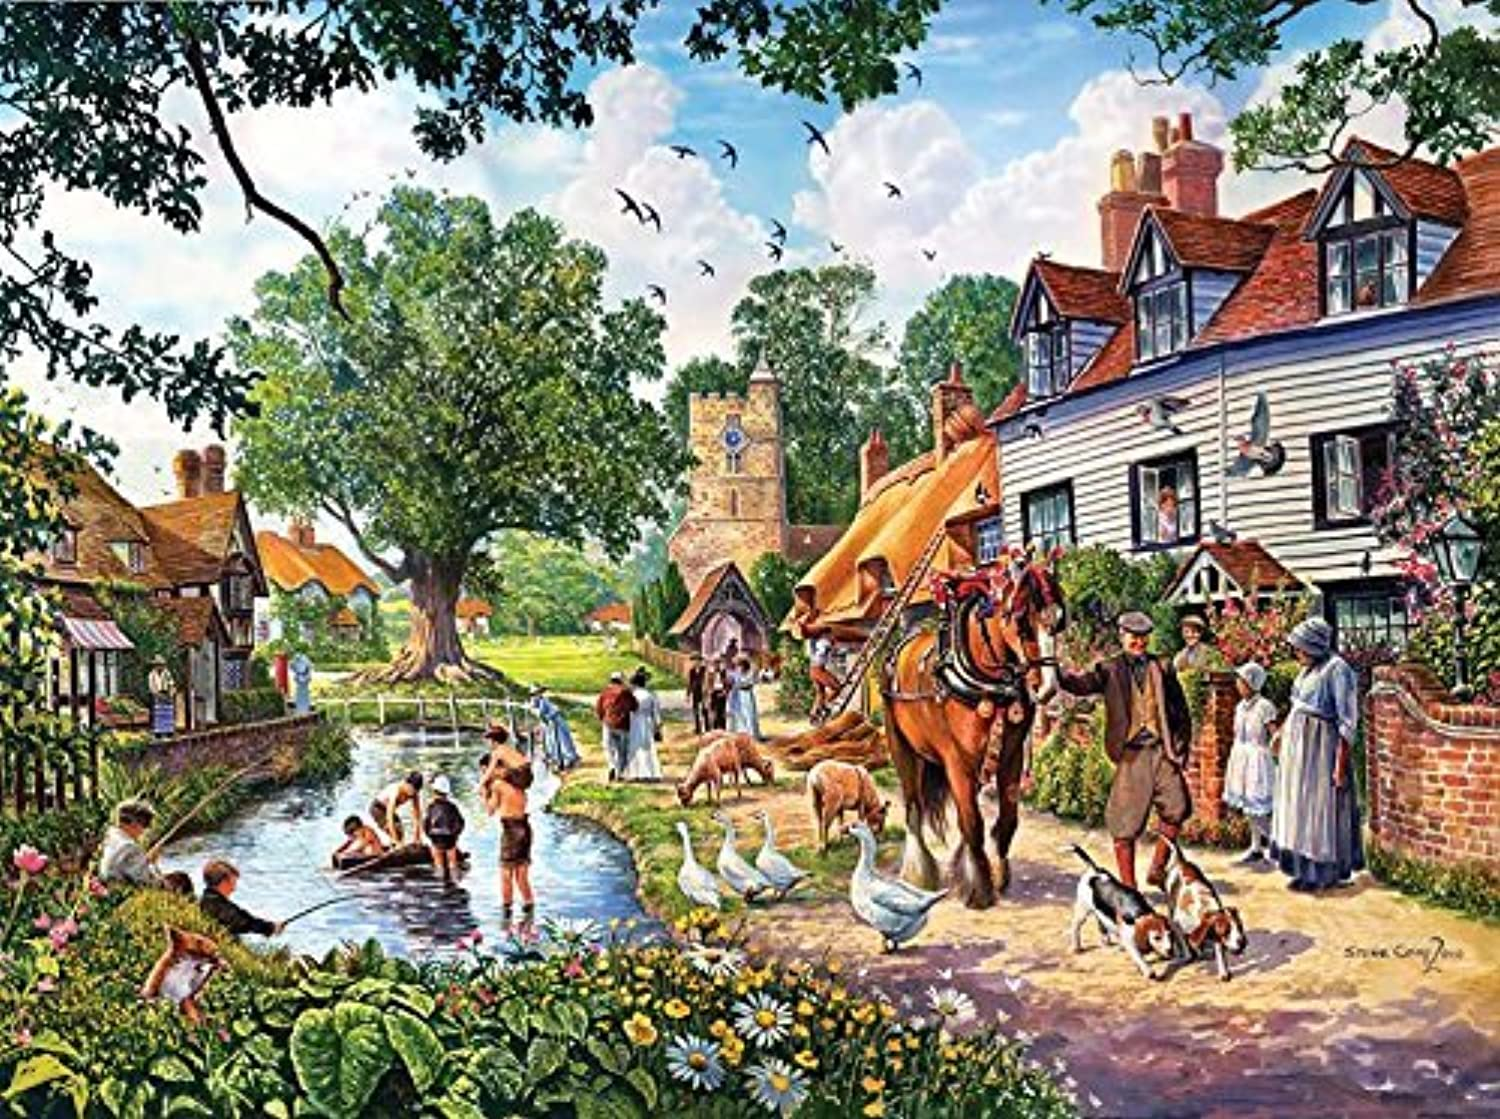 SunsOut A Village Summer Jigsaw Puzzle (1000-Piece) by SunsOut